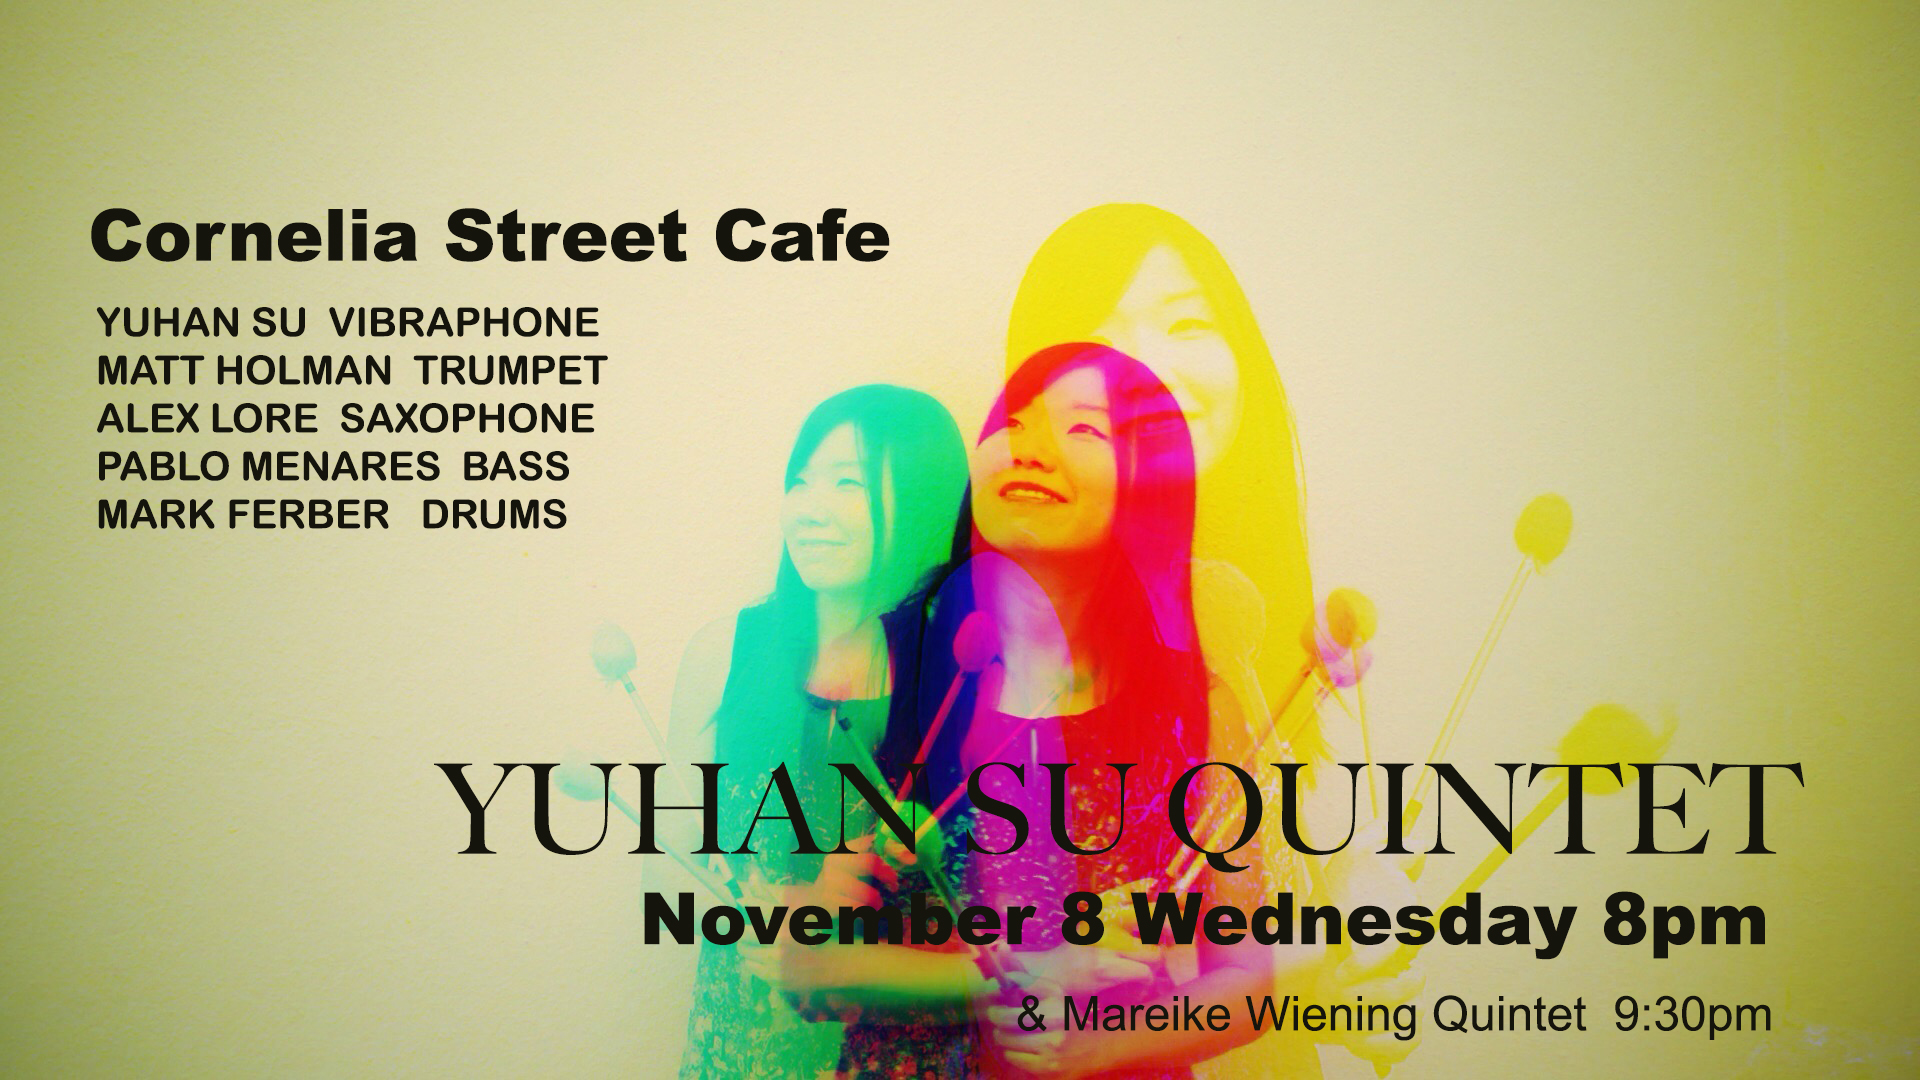 Yuhan Su Quintet in NYC - Yuhan Su Quintet returns to Cornelia Street Cafe before Yuhan headed to winter Asia Tour. Come by to listen to the new compositions of hers featuring a stellar line-up.